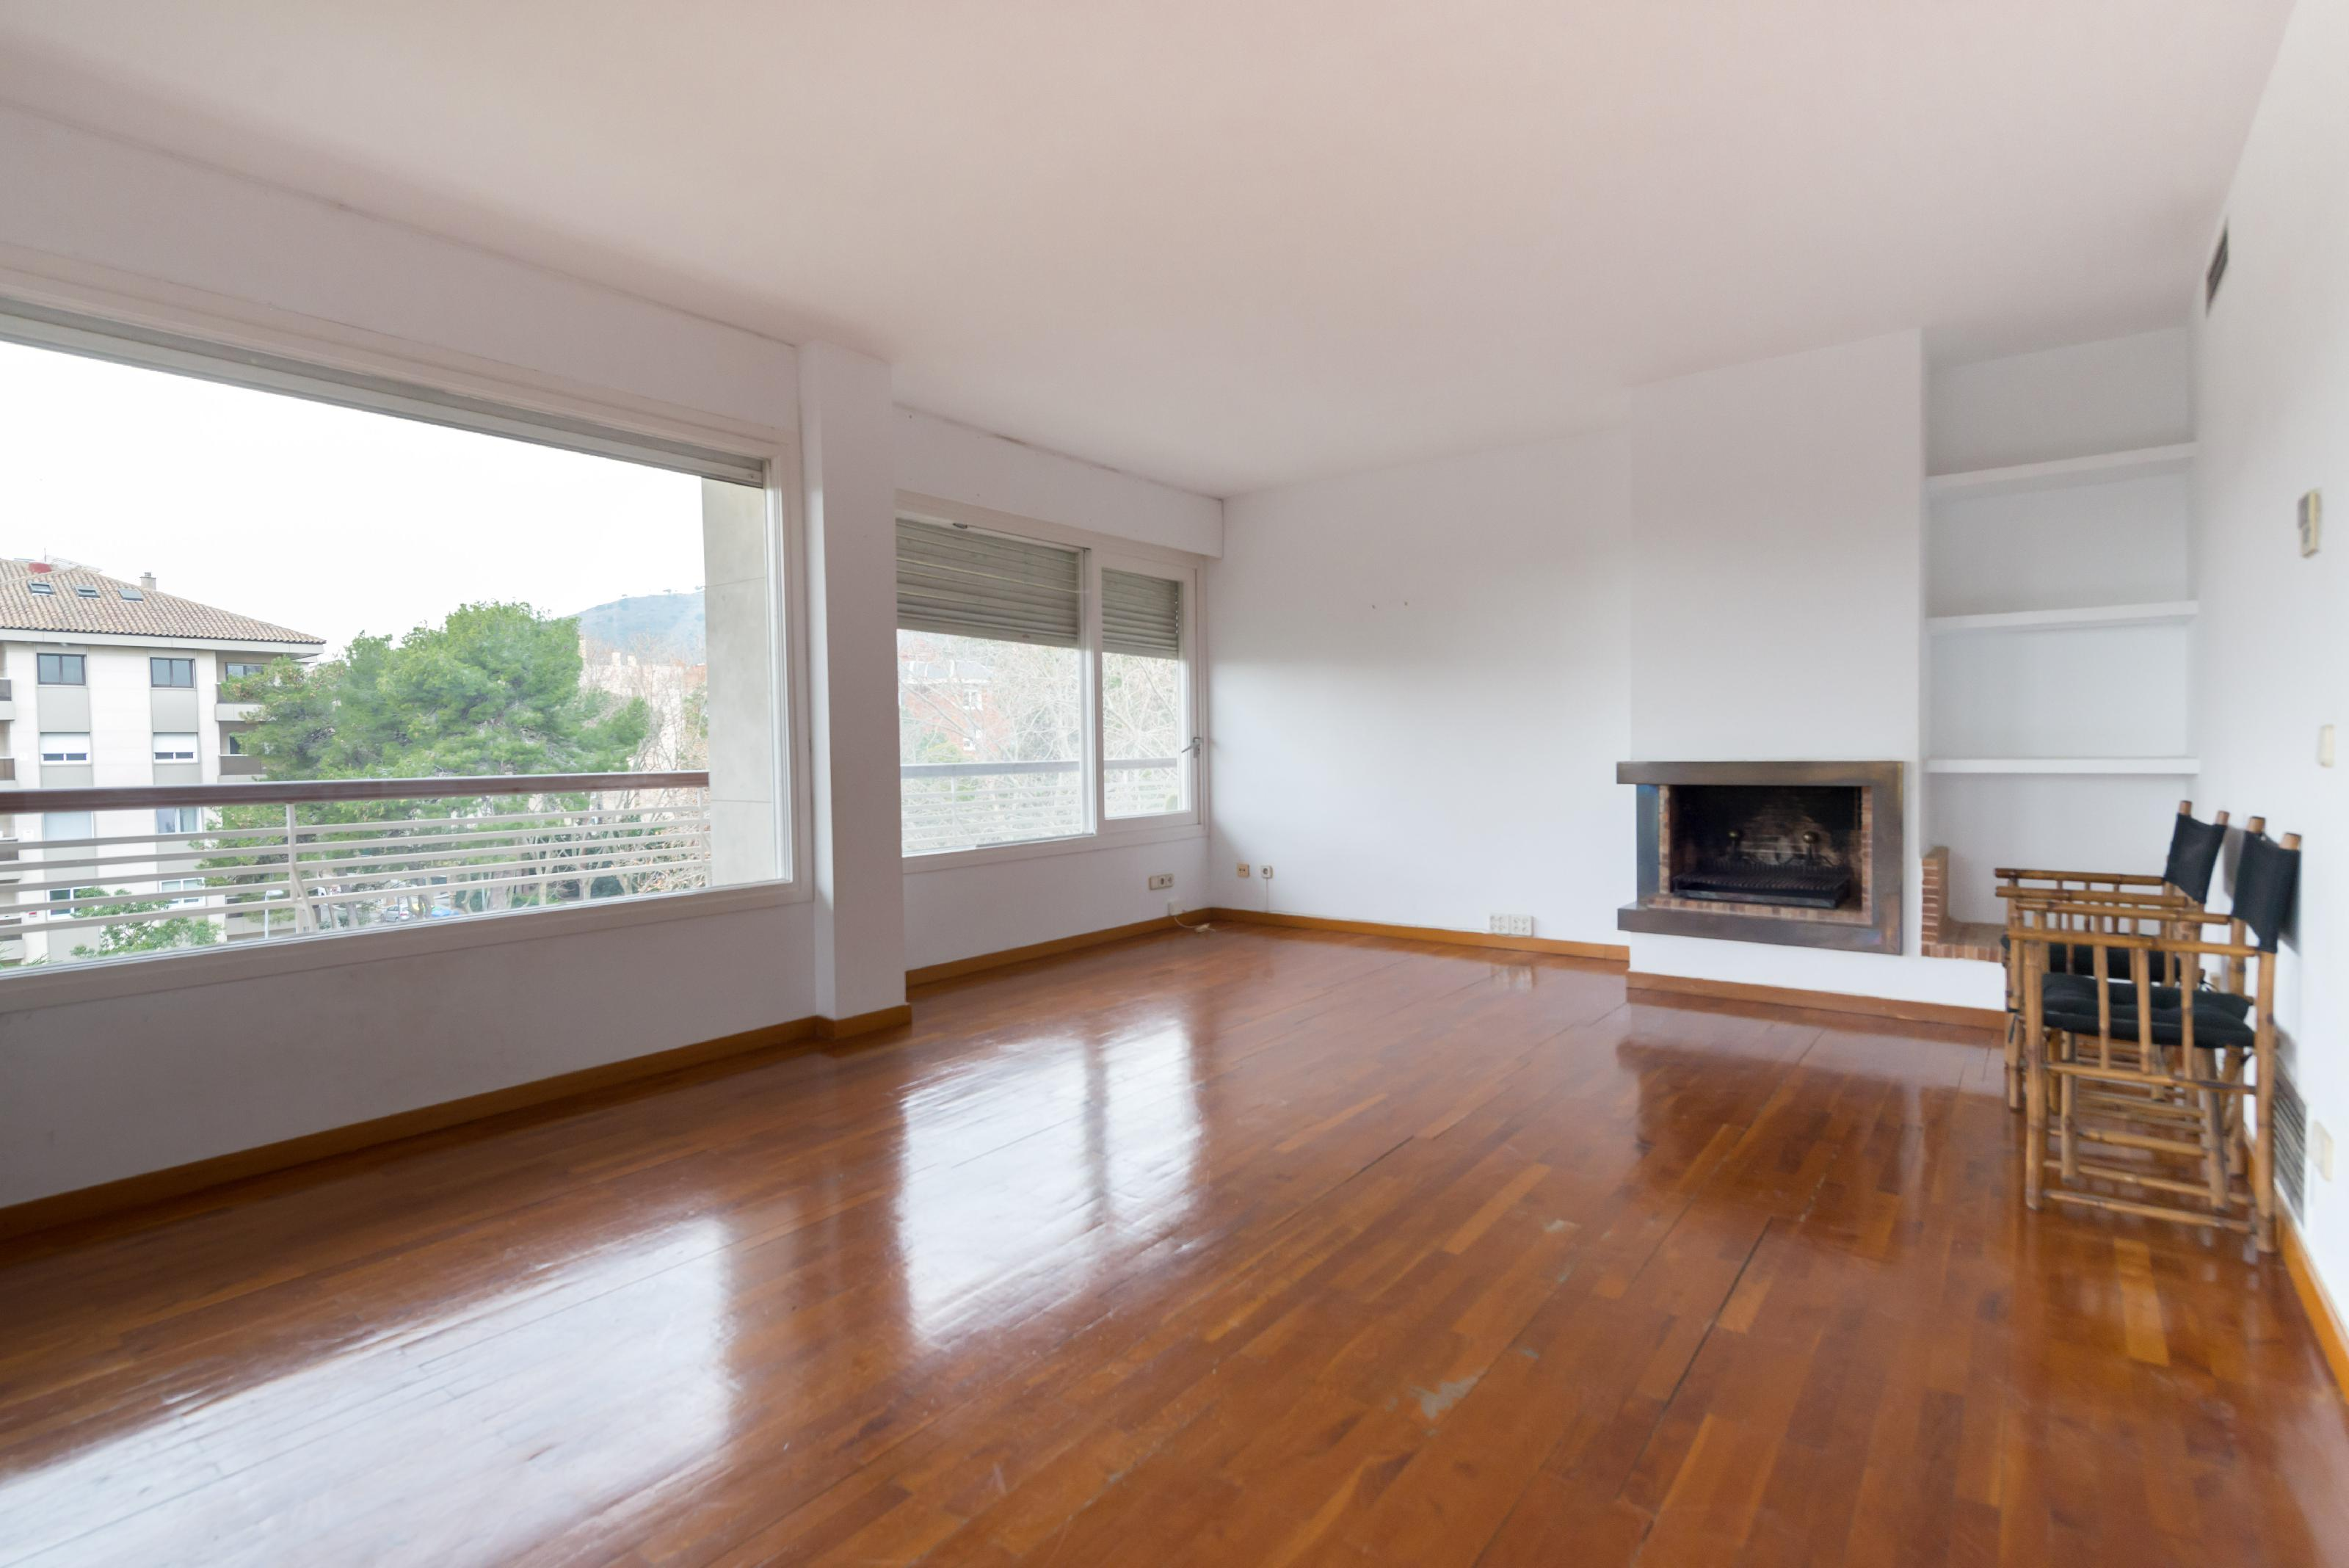 245495 Penthouse for sale in Les Corts, Pedralbes 5